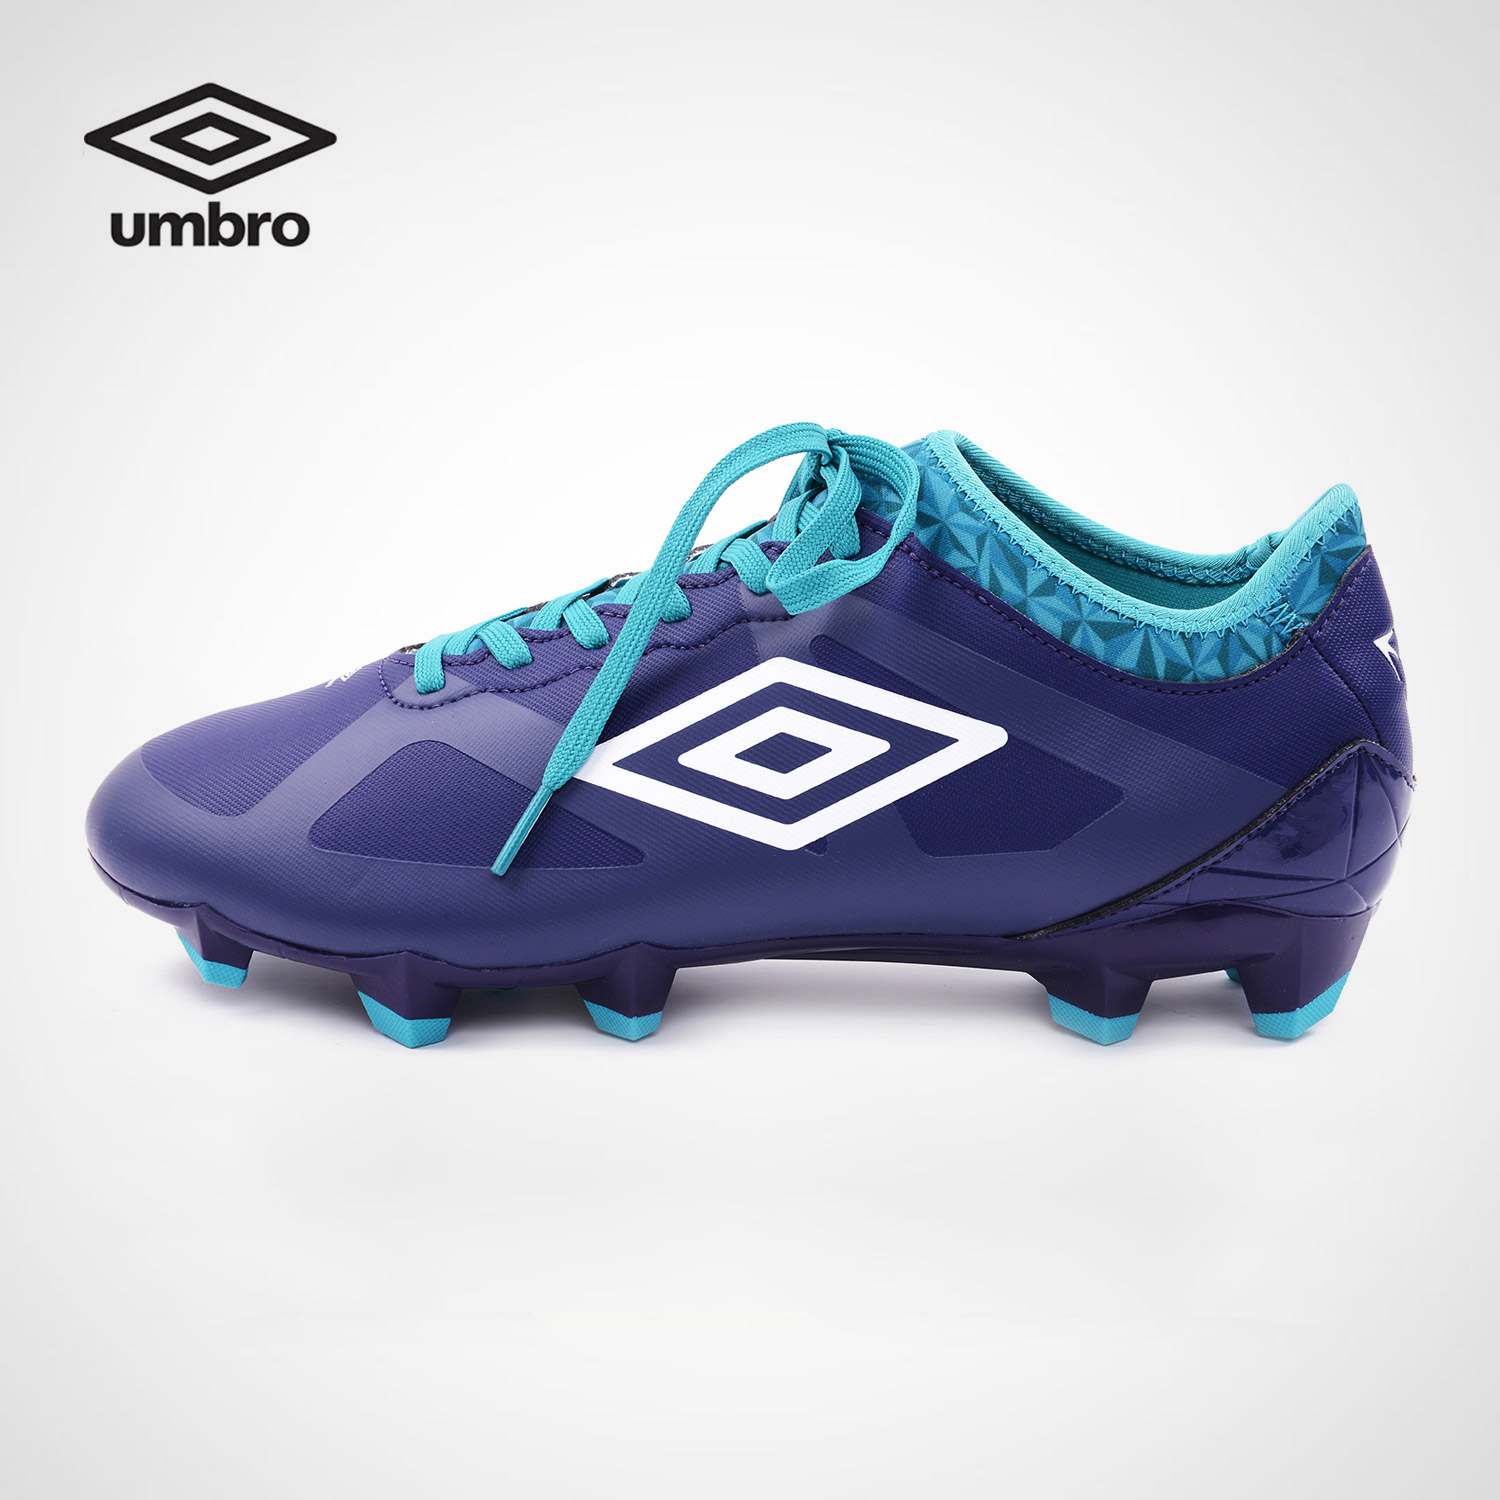 Umbro Men's SexeMare Professional Soccer Cleats 2017 Newest Mens FG Football Boots Soccer Shoes Ucc90153 puma powercat 1 12 sl firm ground fg mens soccer cleats